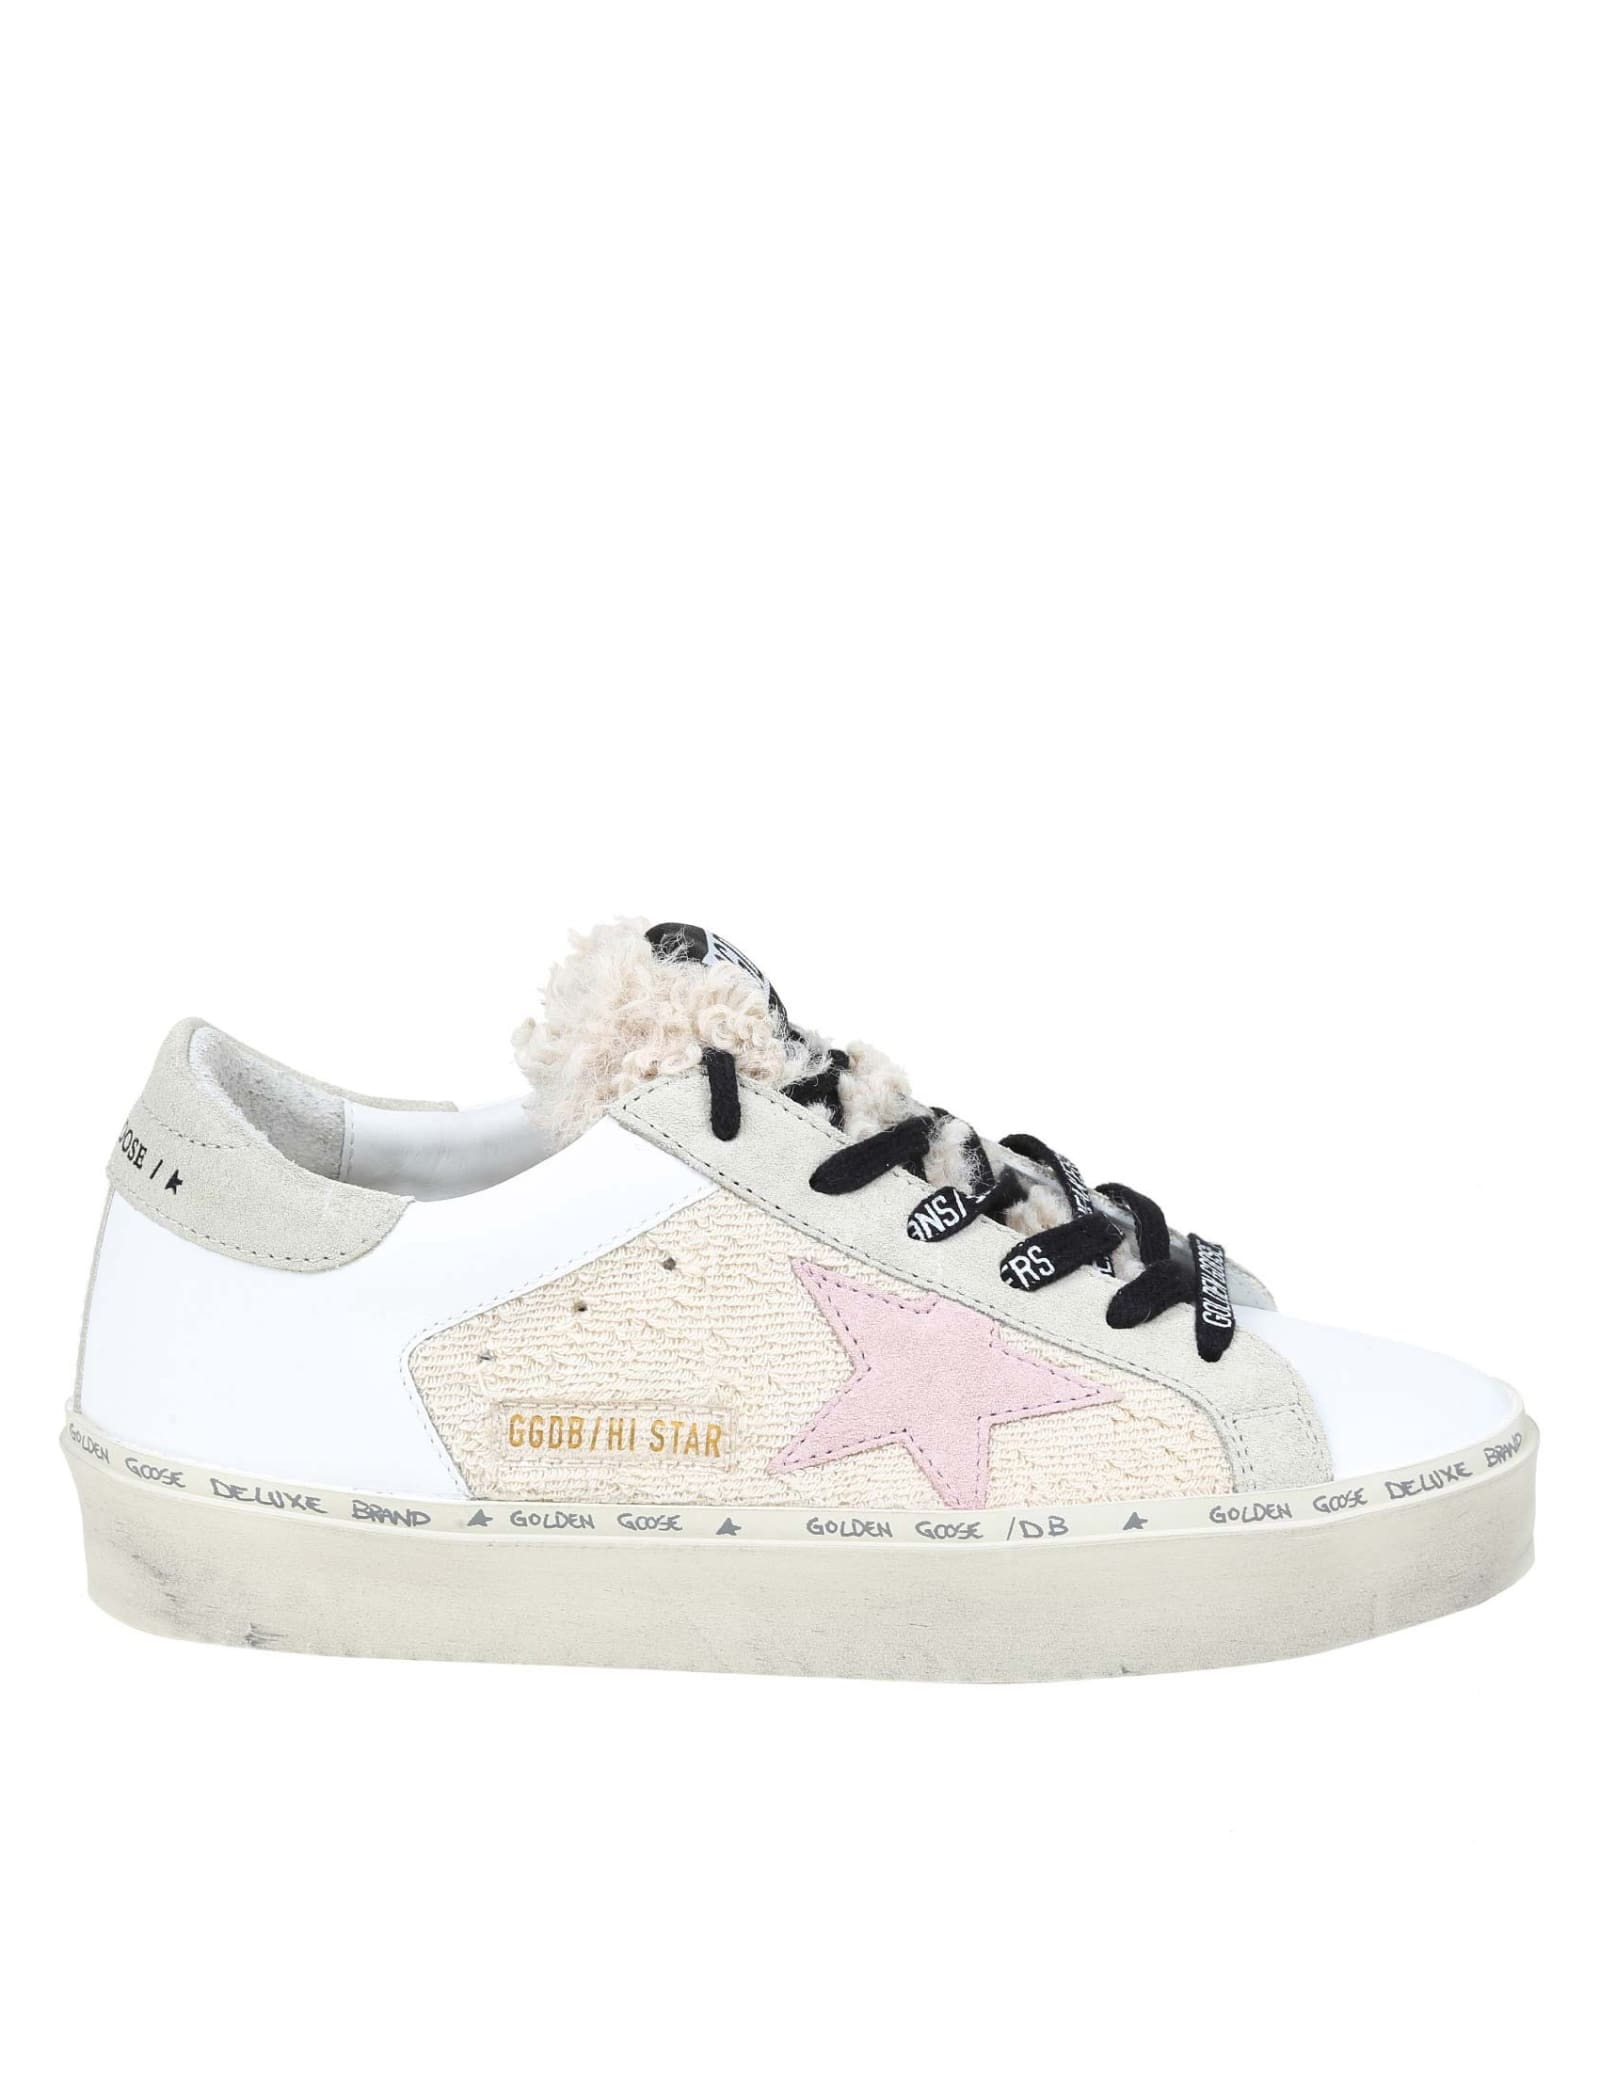 Golden Goose Hi Star Sneakers In Leather And Fabric